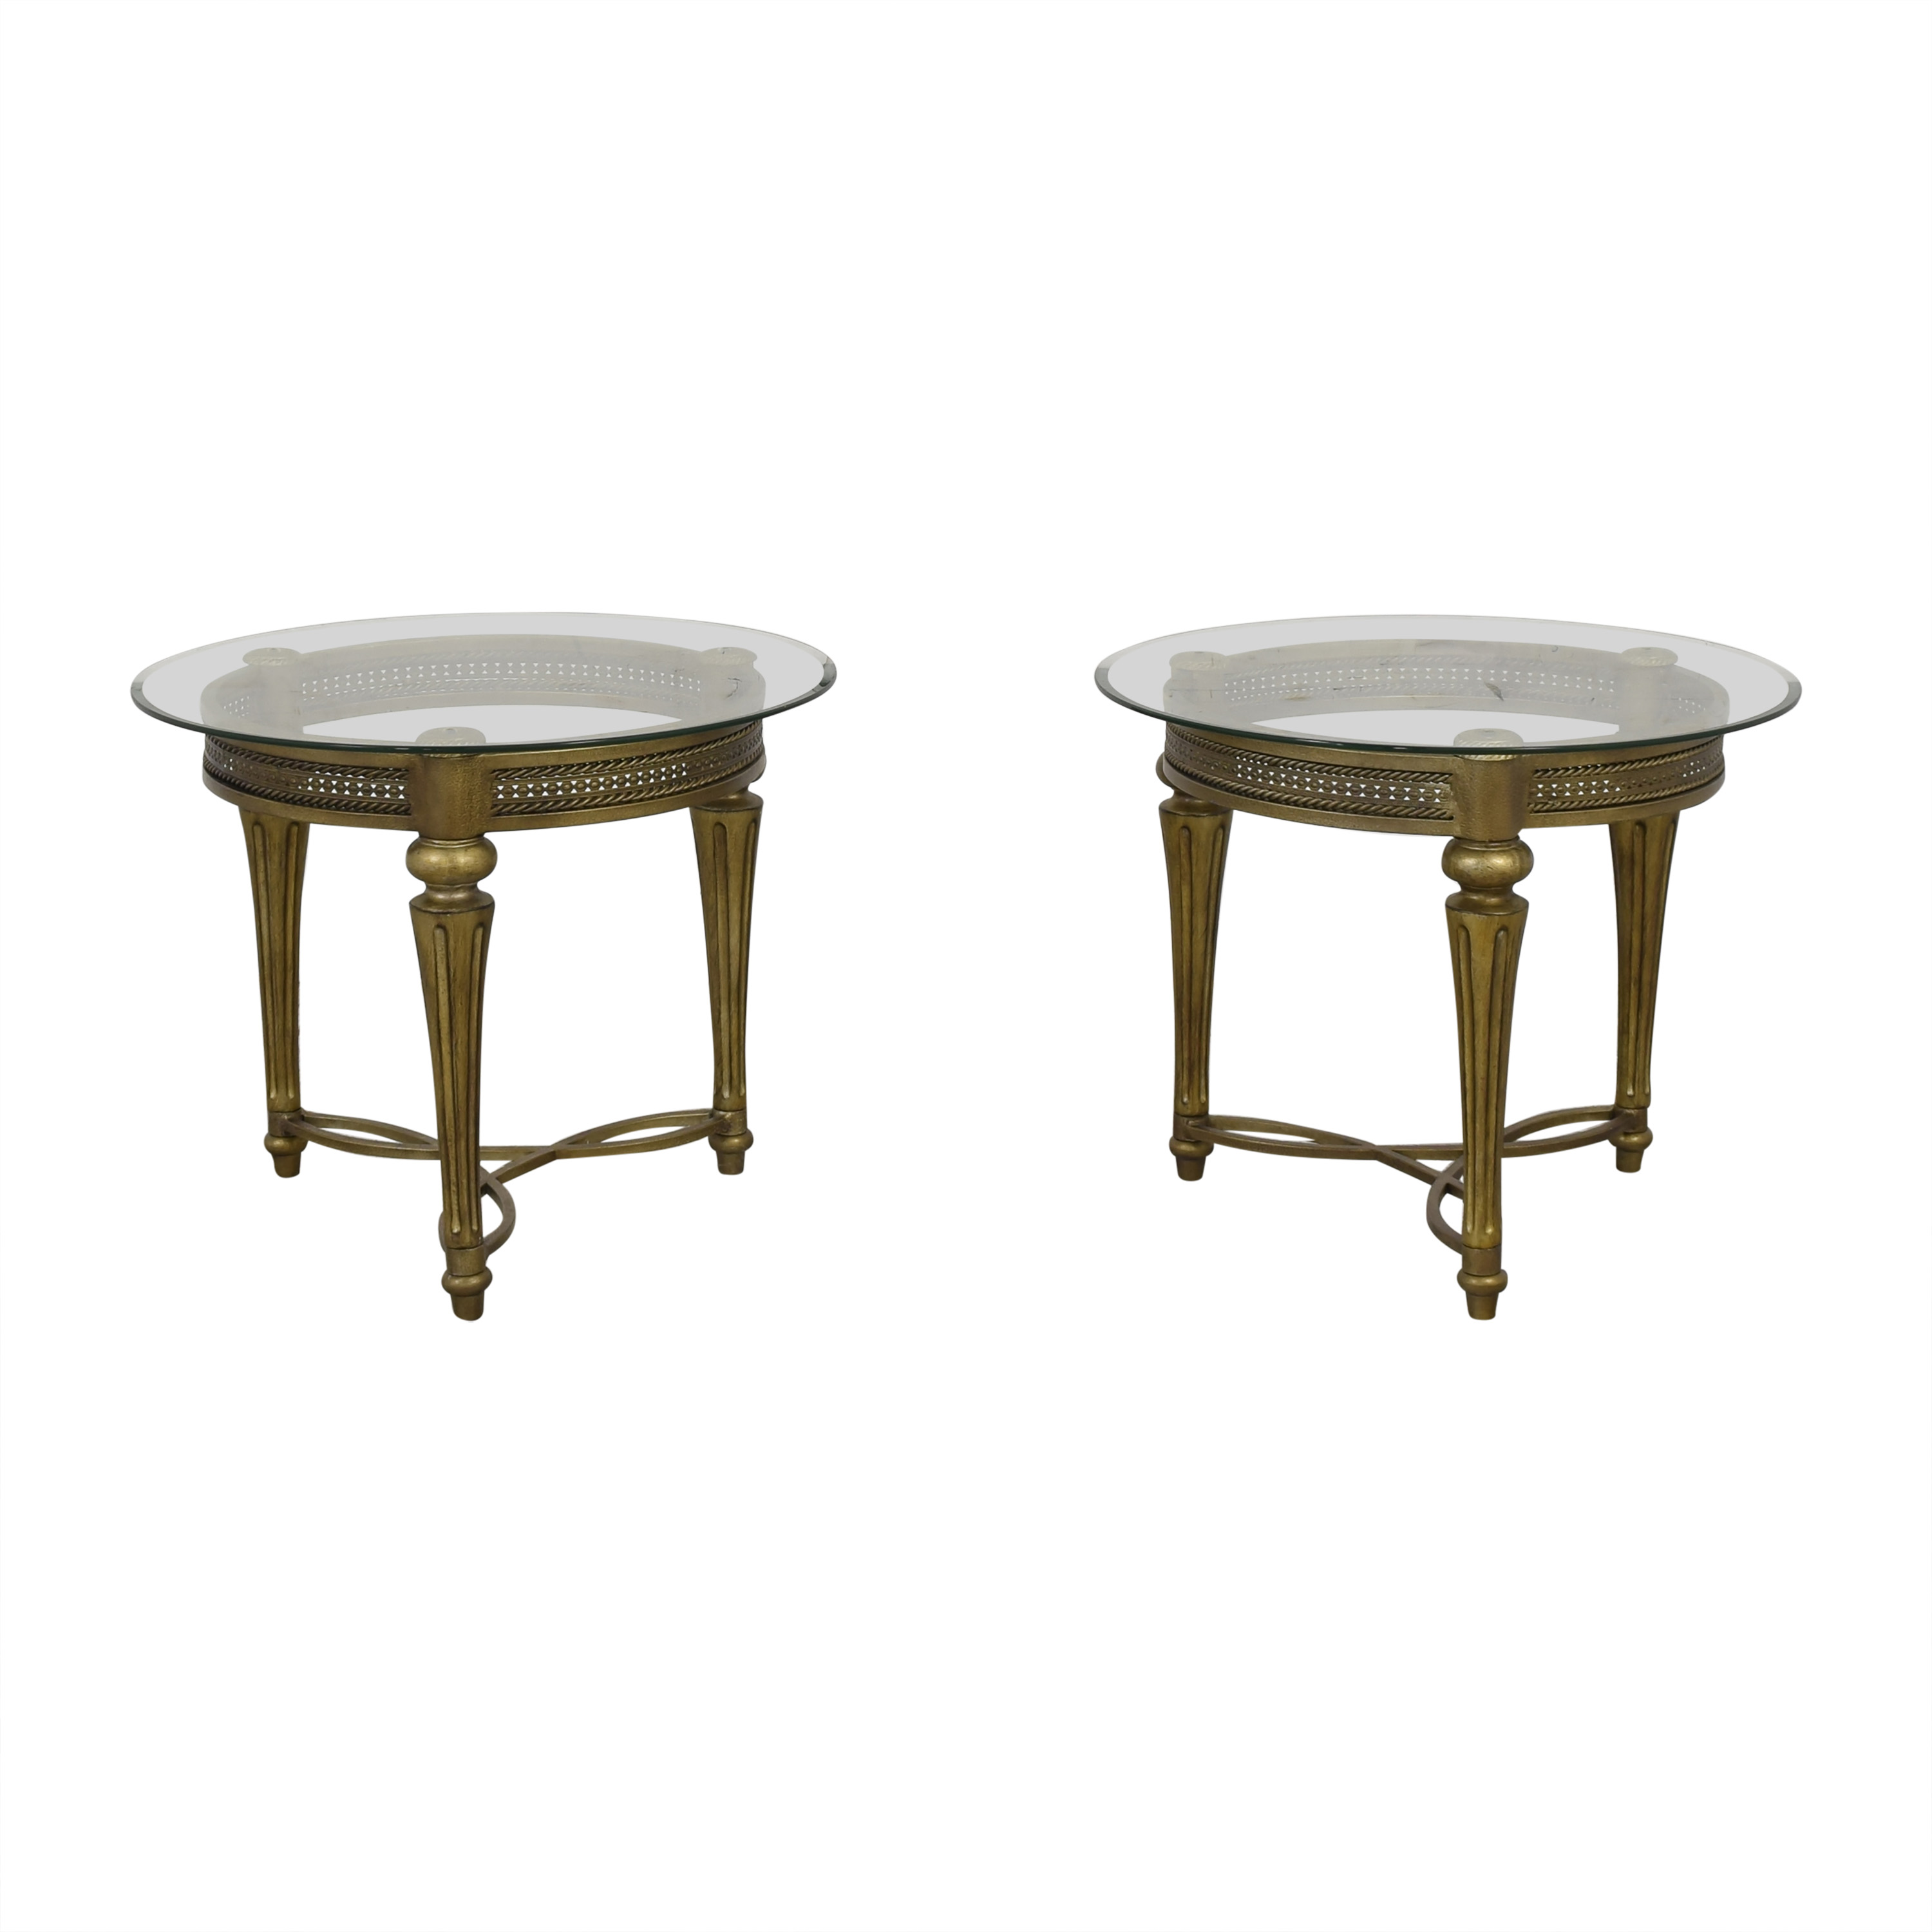 83 off magnussen home magnussen home furniture galloway round end tables tables